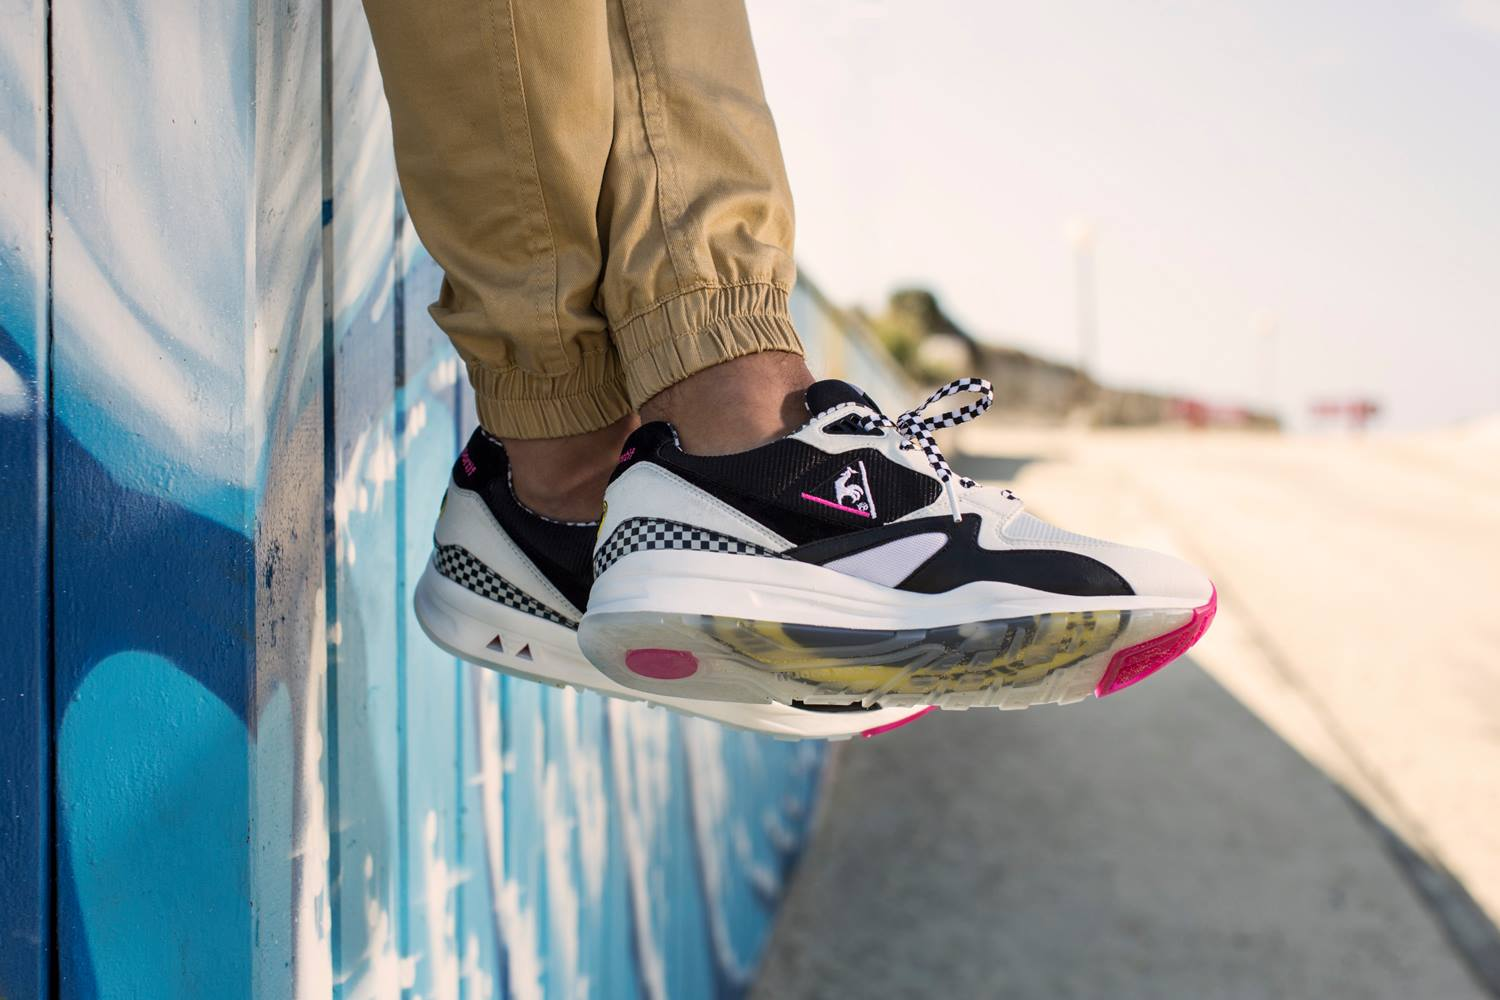 Town & Country Surf Designs x Le Coq Sportif LCS R800